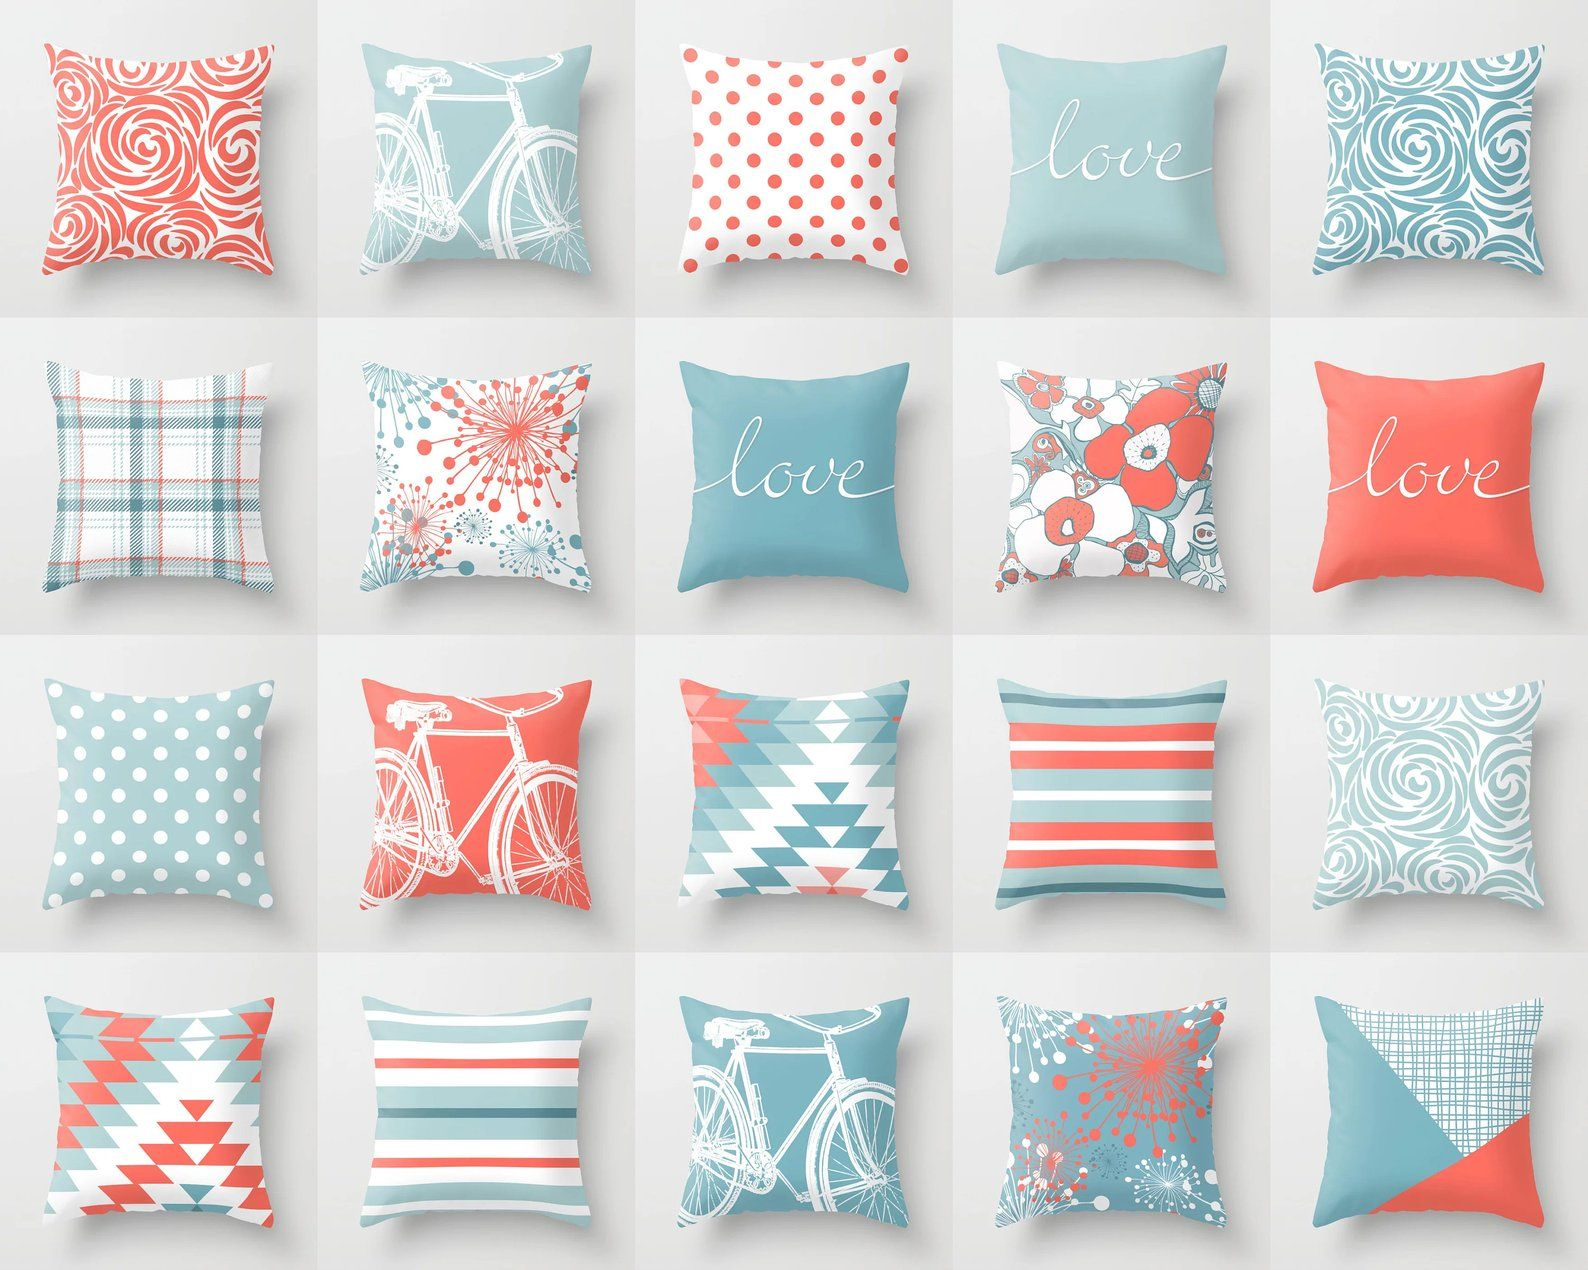 Living Coral Blue White Throw Pillow Mix And Match Indoor Etsy Pillow Mixing White Throw Pillows Throw Pillows